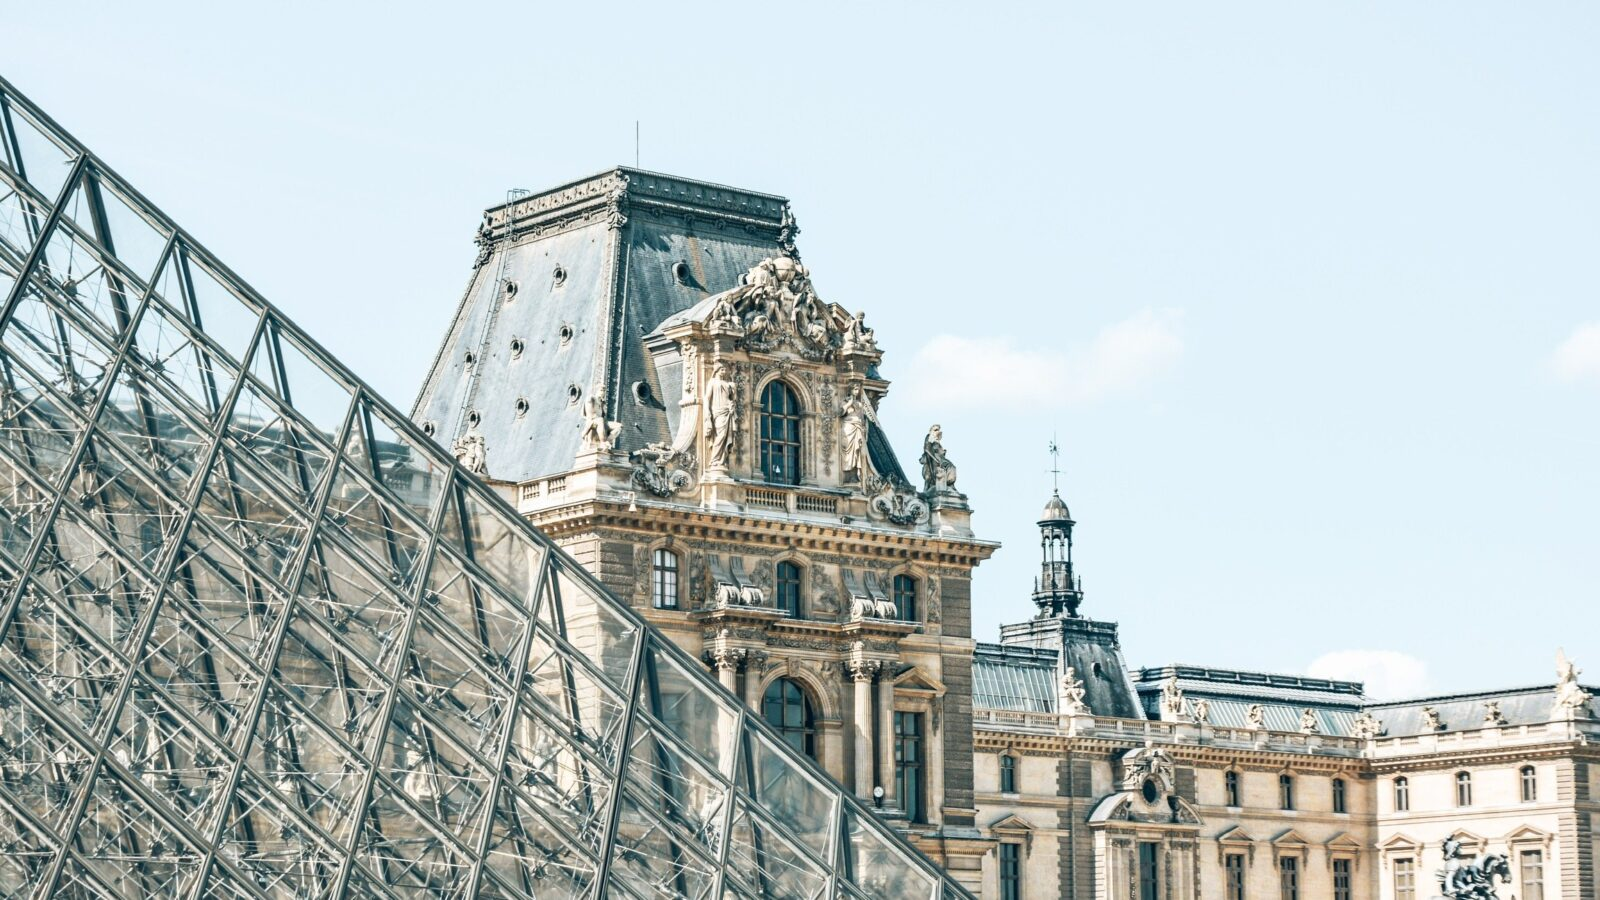 This image shows the Louvre Museum in Paris